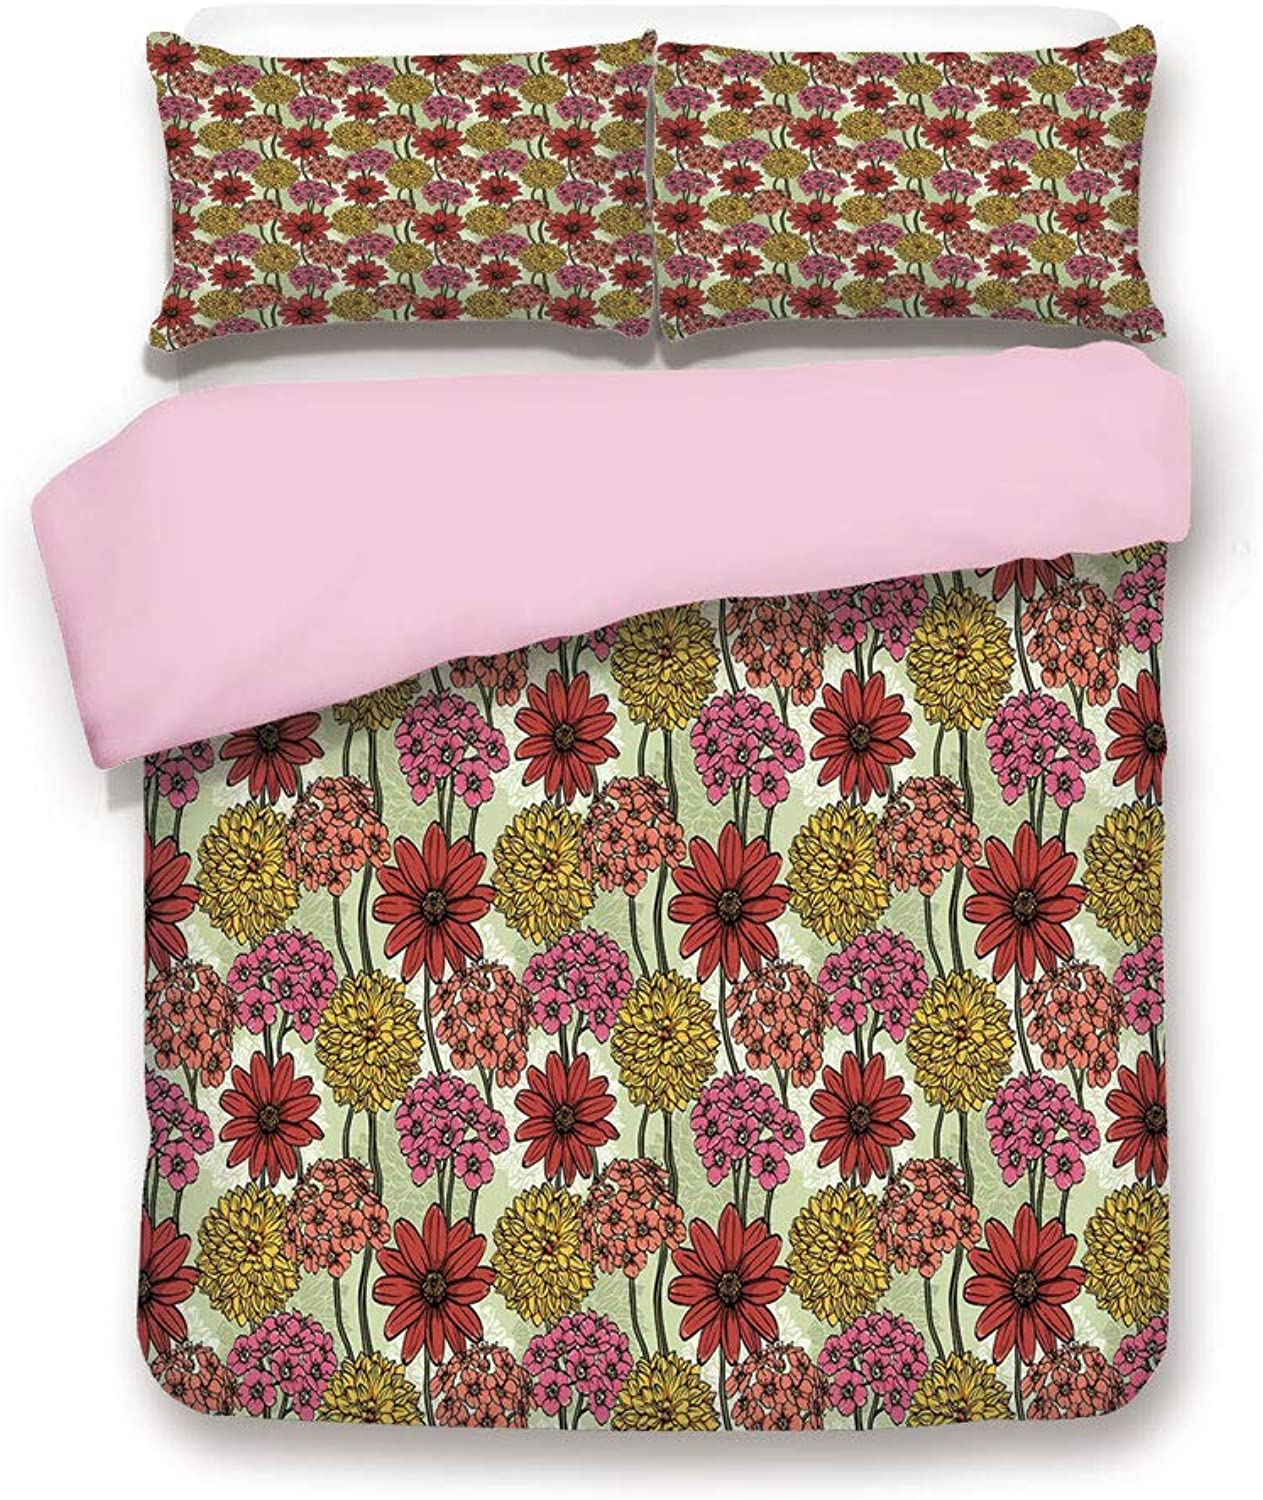 Pink Duvet Cover Set,Queen Size,Hand Drawn Magnetic colorful Various Bunch of Flower Growth Flourish Botanical Image,Decorative 3 Piece Bedding Set with 2 Pillow Sham,Best Gift For Girls Women,Multico